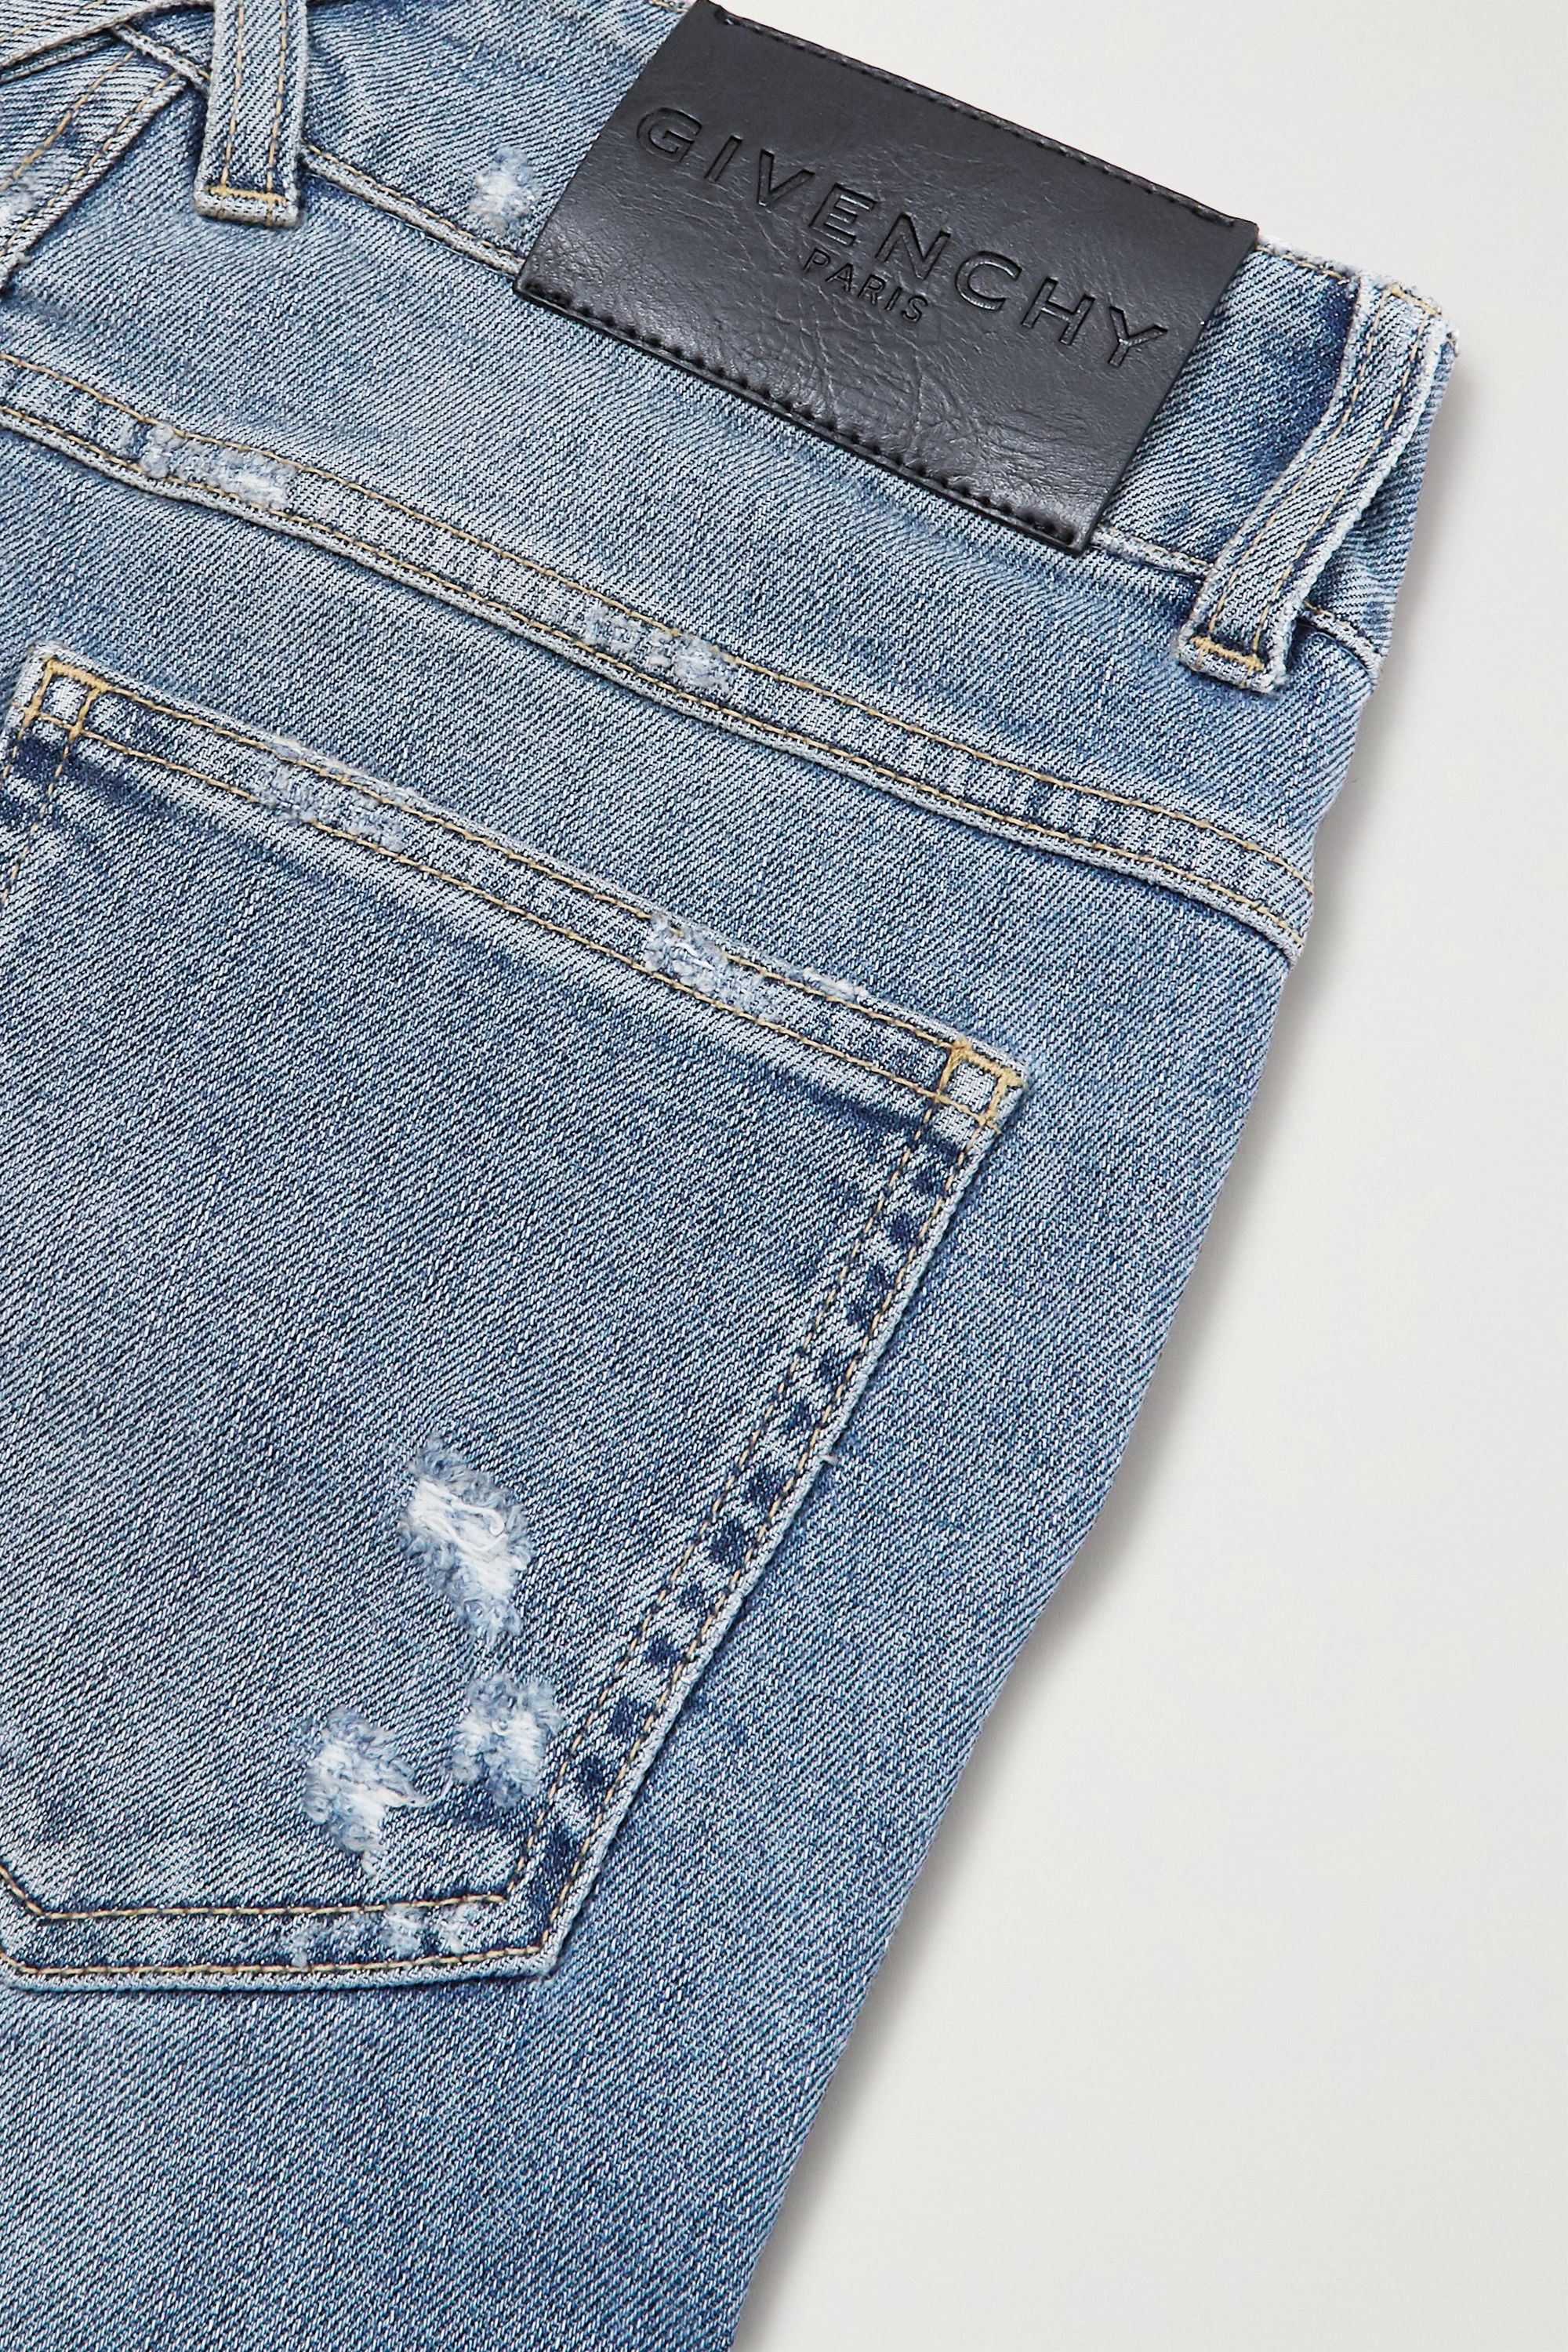 Givenchy Distressed mid-rise skinny jeans